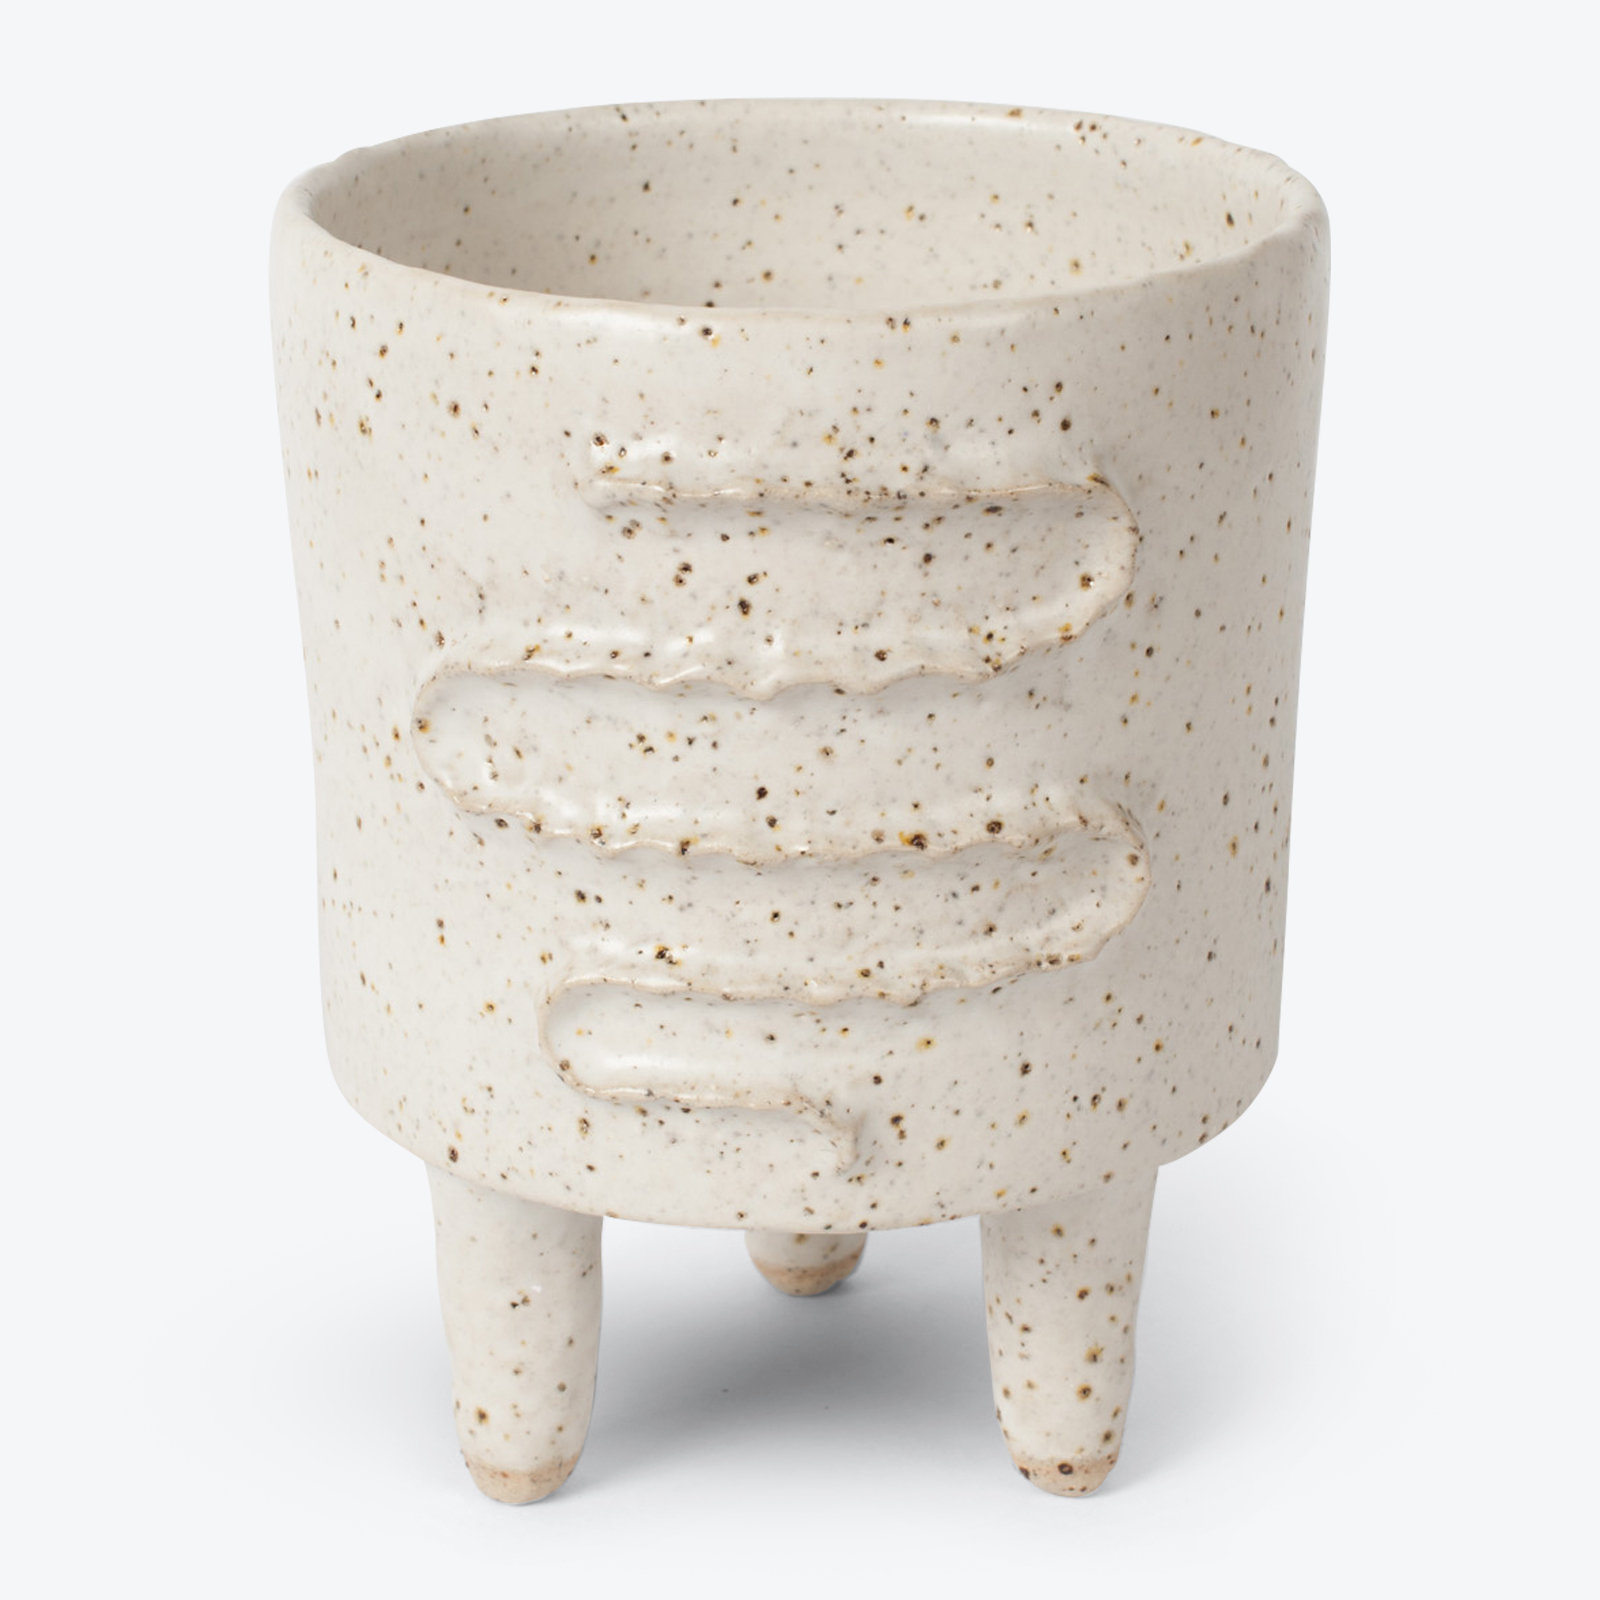 Snake Planter In Stoneware By Peta Armstrong 01